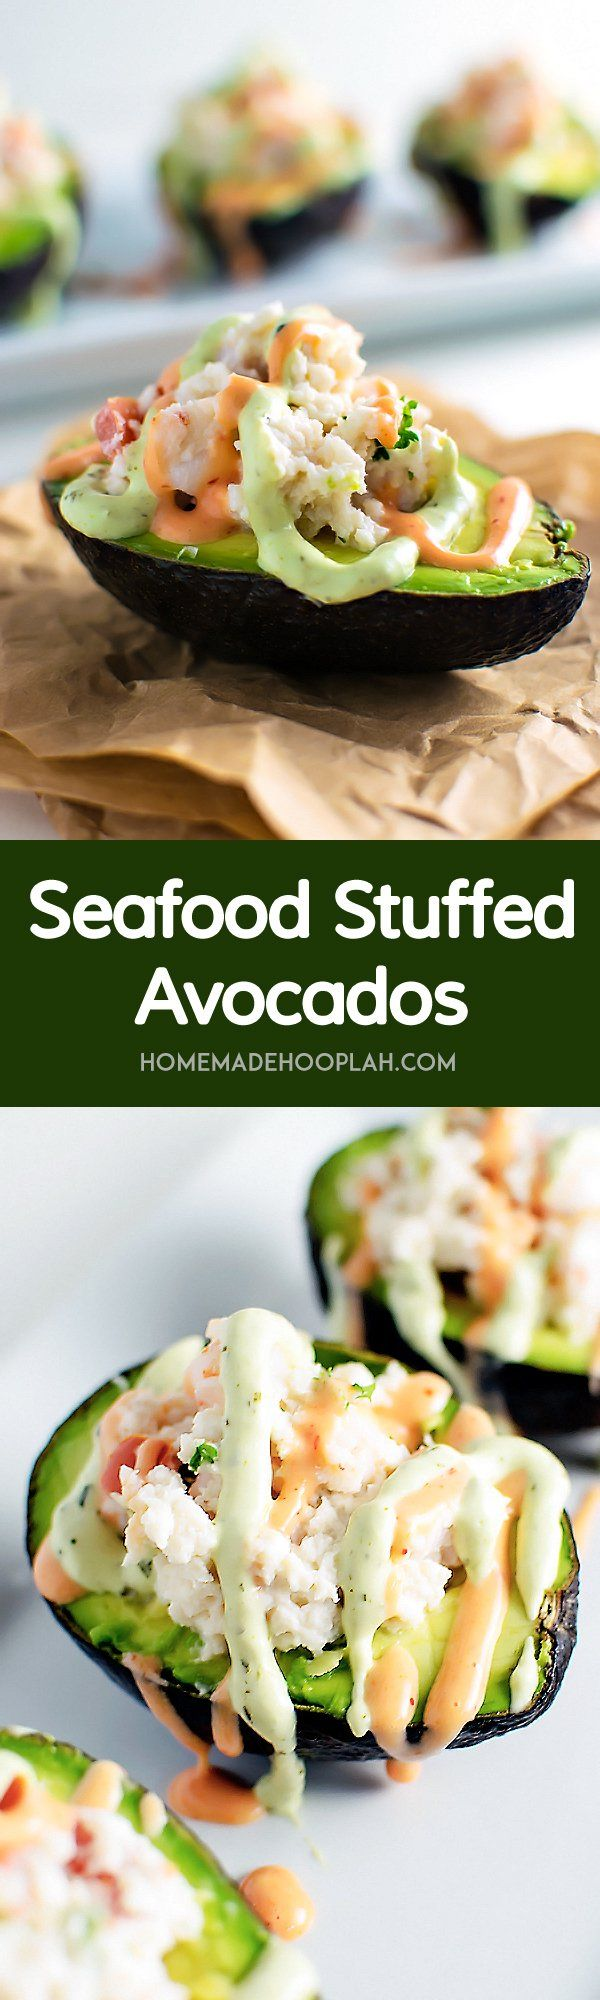 Seafood Stuffed Avocados! Halved avocados filled with shrimp, crab, and tomato and then drizzled with sriracha and avocado cream on top.   HomeamdeHooplah.com